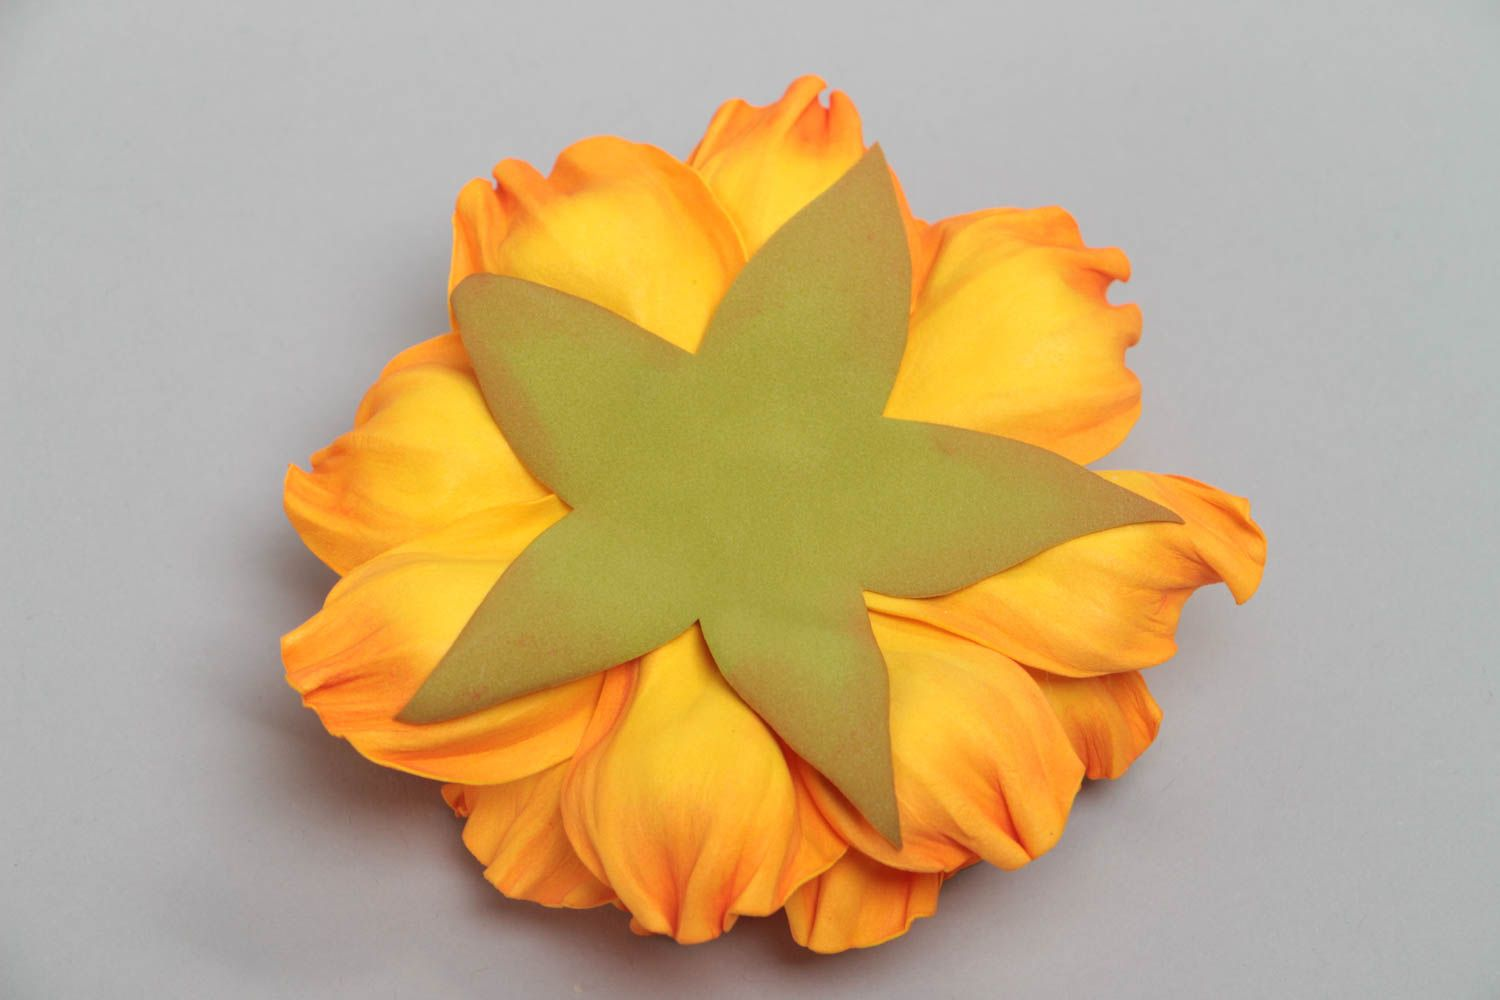 Yellow handmade designer textile foamiran flower for brooch or hair clip making photo 4